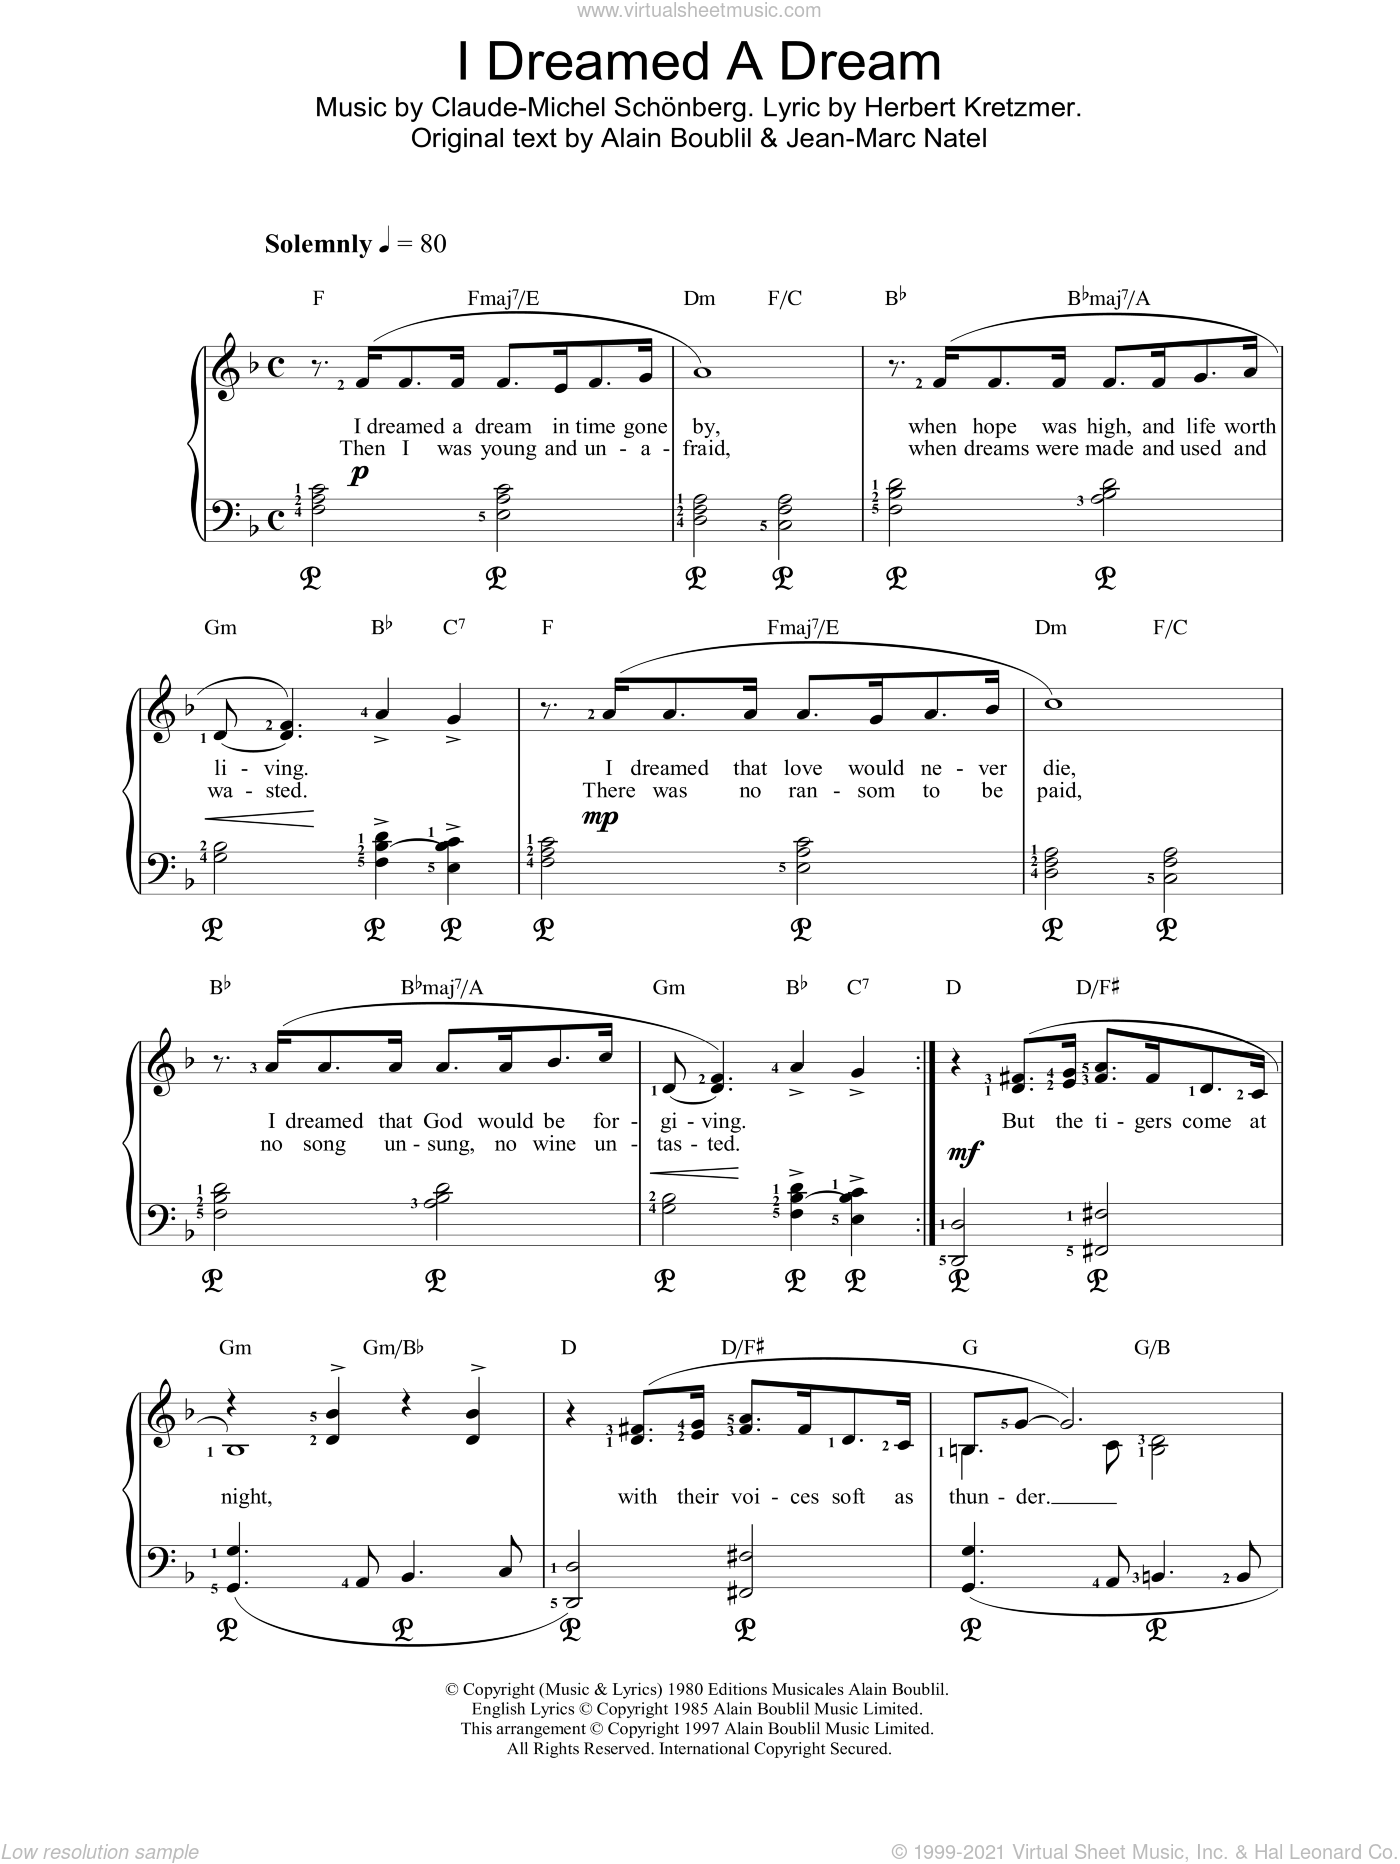 I Dreamed A Dream (from Les Miserables) sheet music for piano solo by Alain Boublil, intermediate skill level